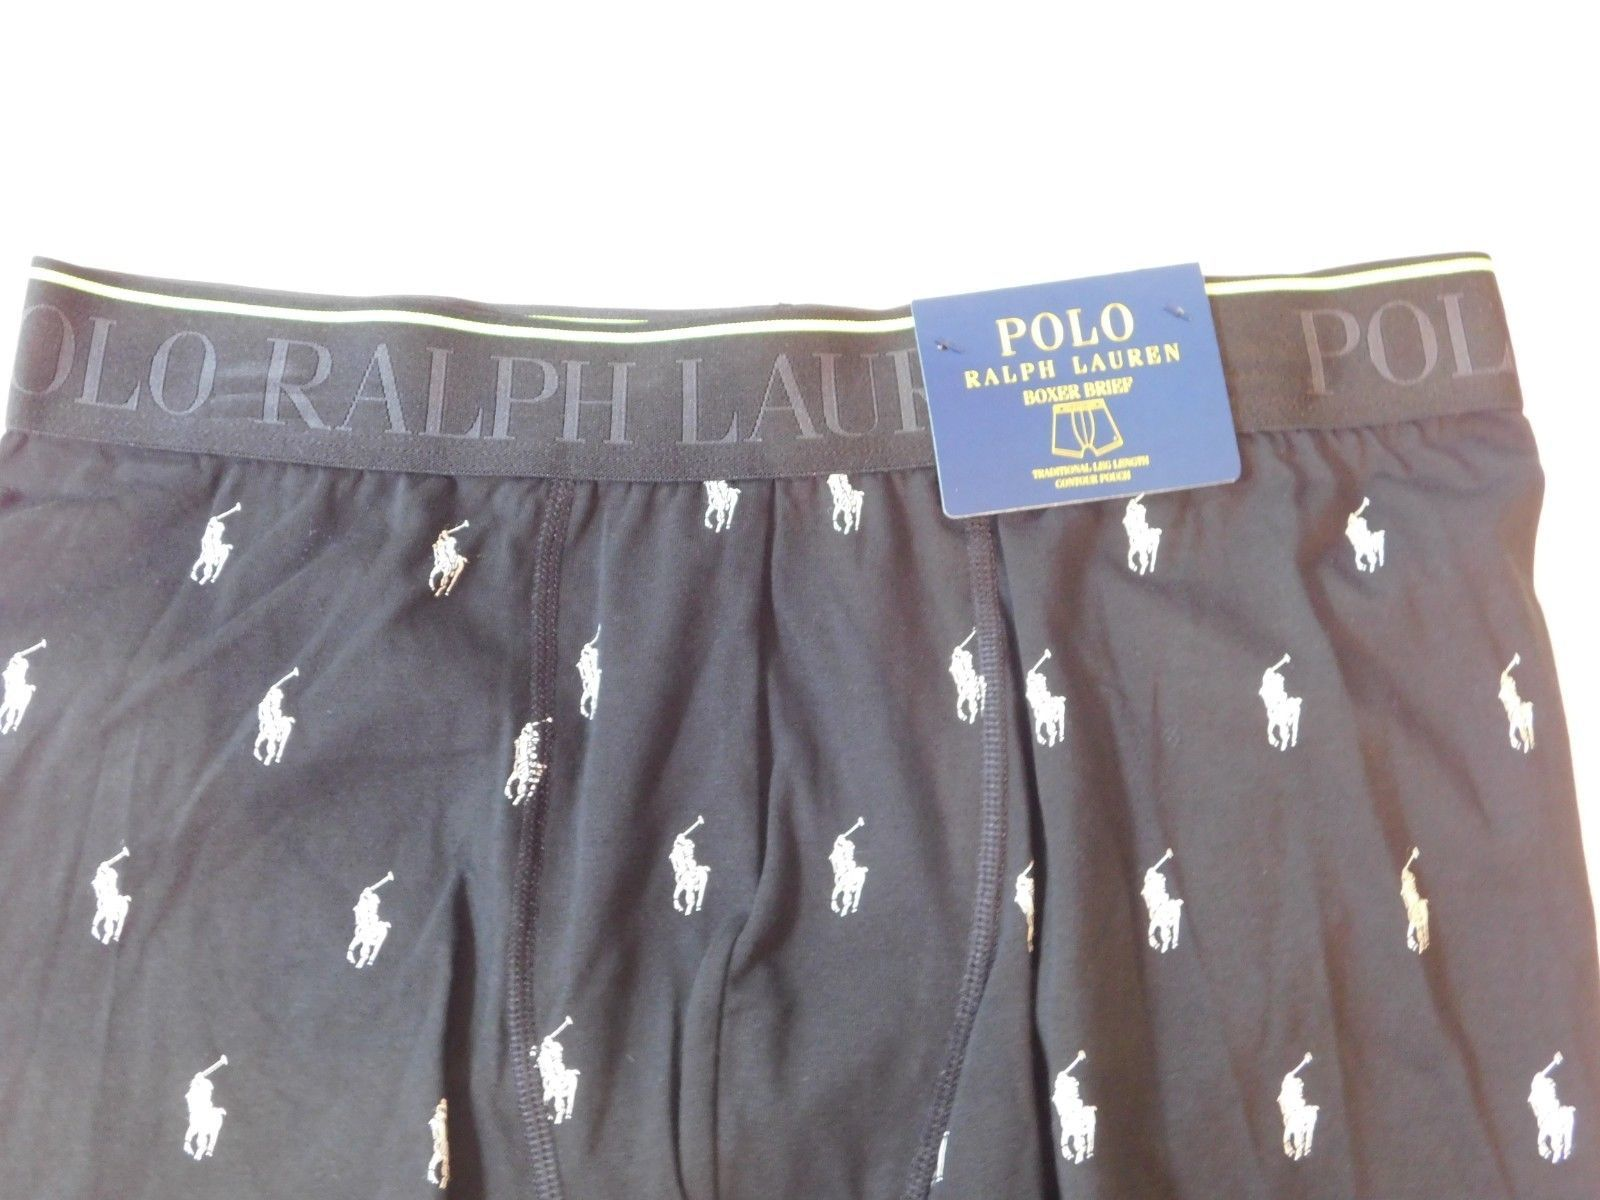 Polo Ralph Lauren underwear men's Boxer Brief Traditional Leg Length L 71S